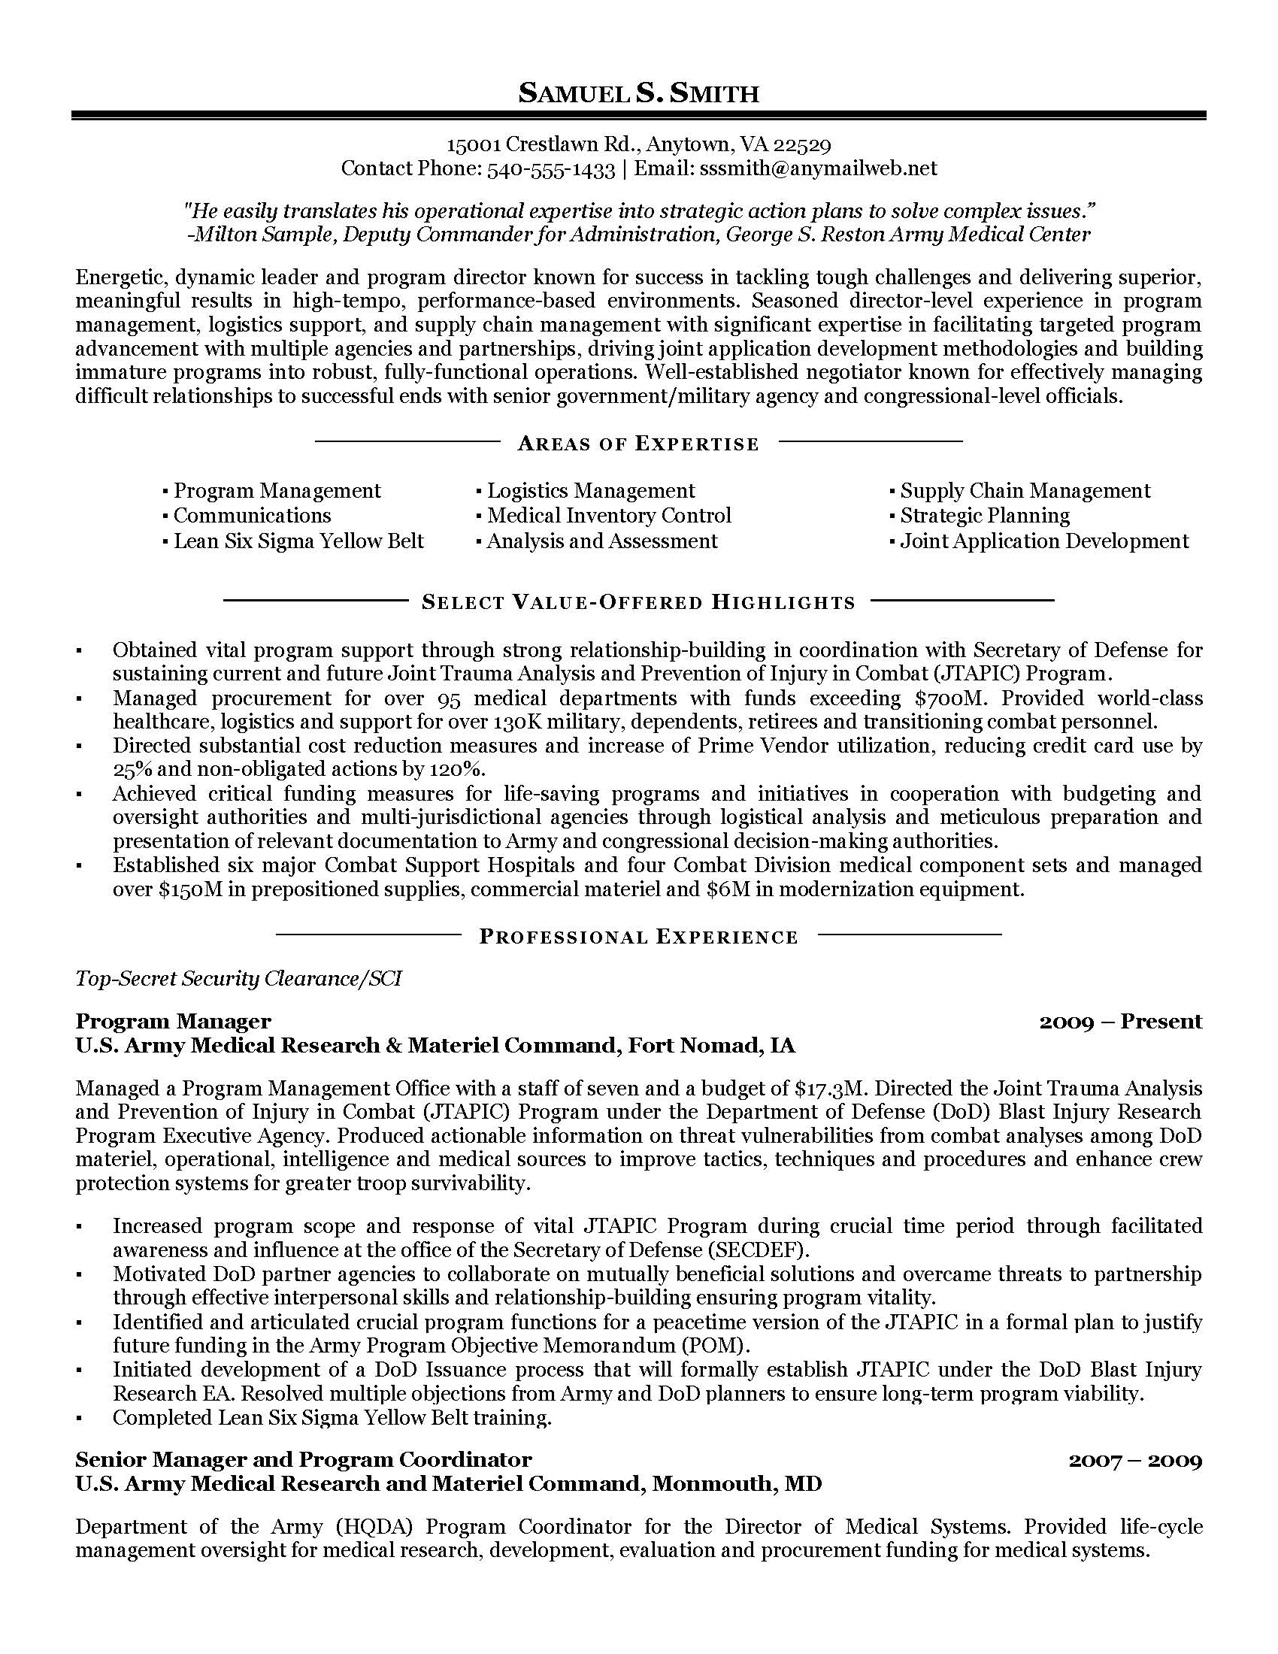 military resume samples examples writers executive core qualifications transition Resume Executive Core Qualifications Resume